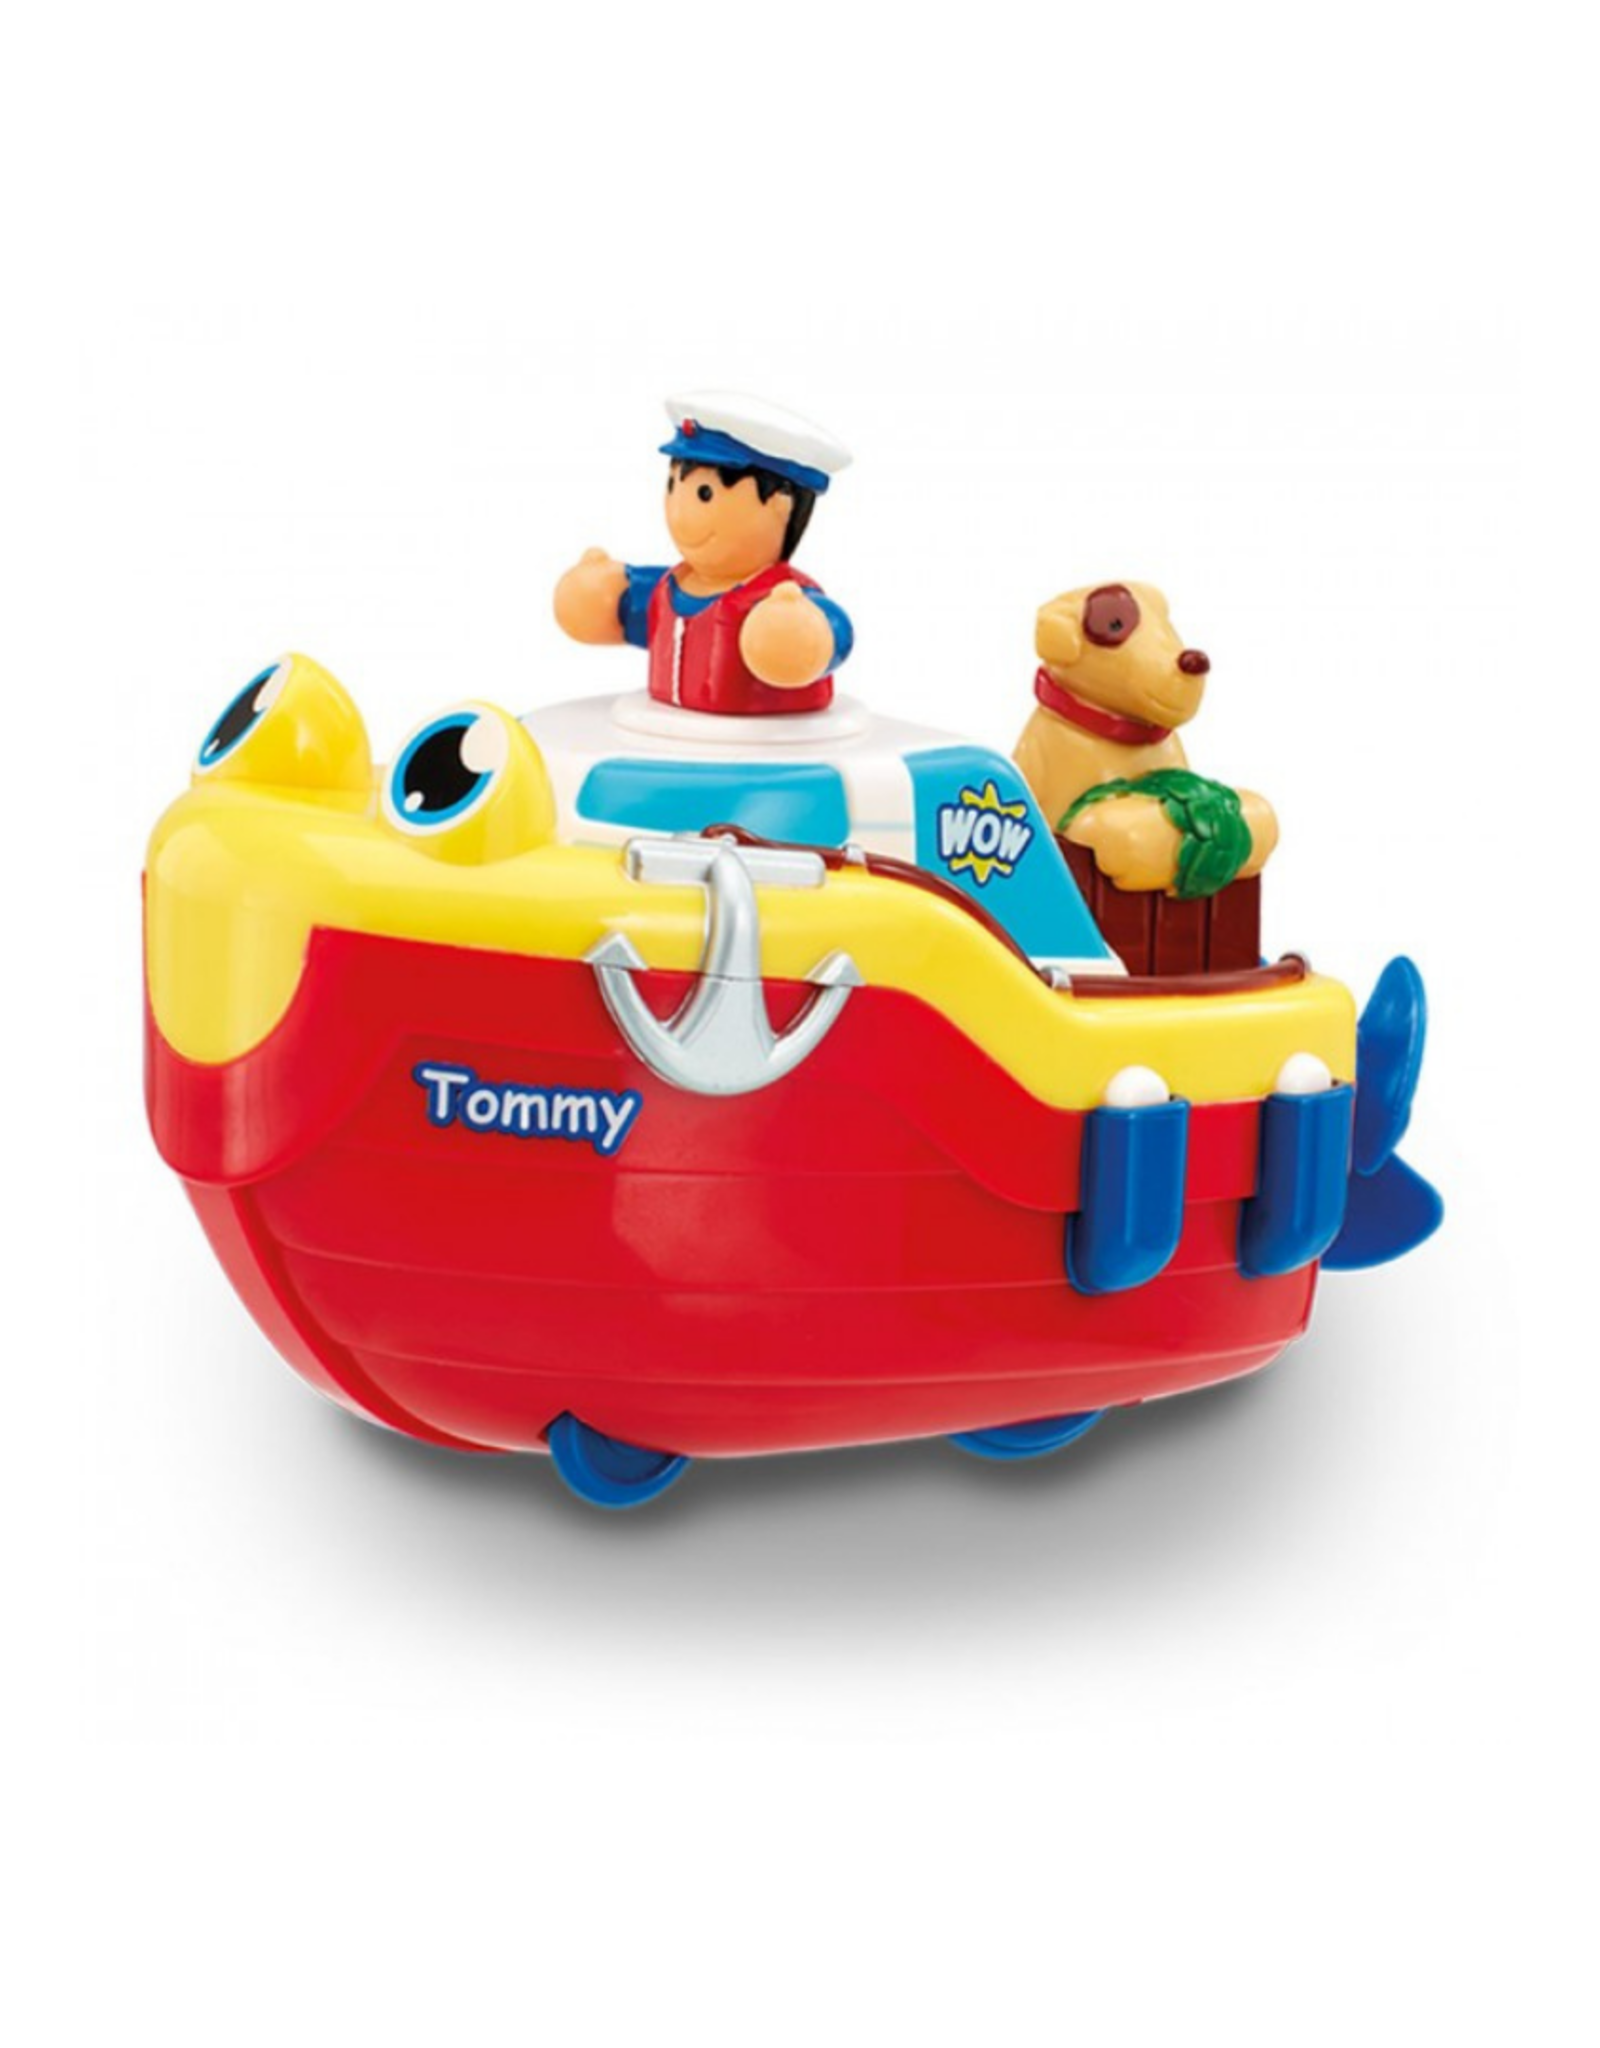 WOW Toys WOW Toys - Tommy Tug Boat